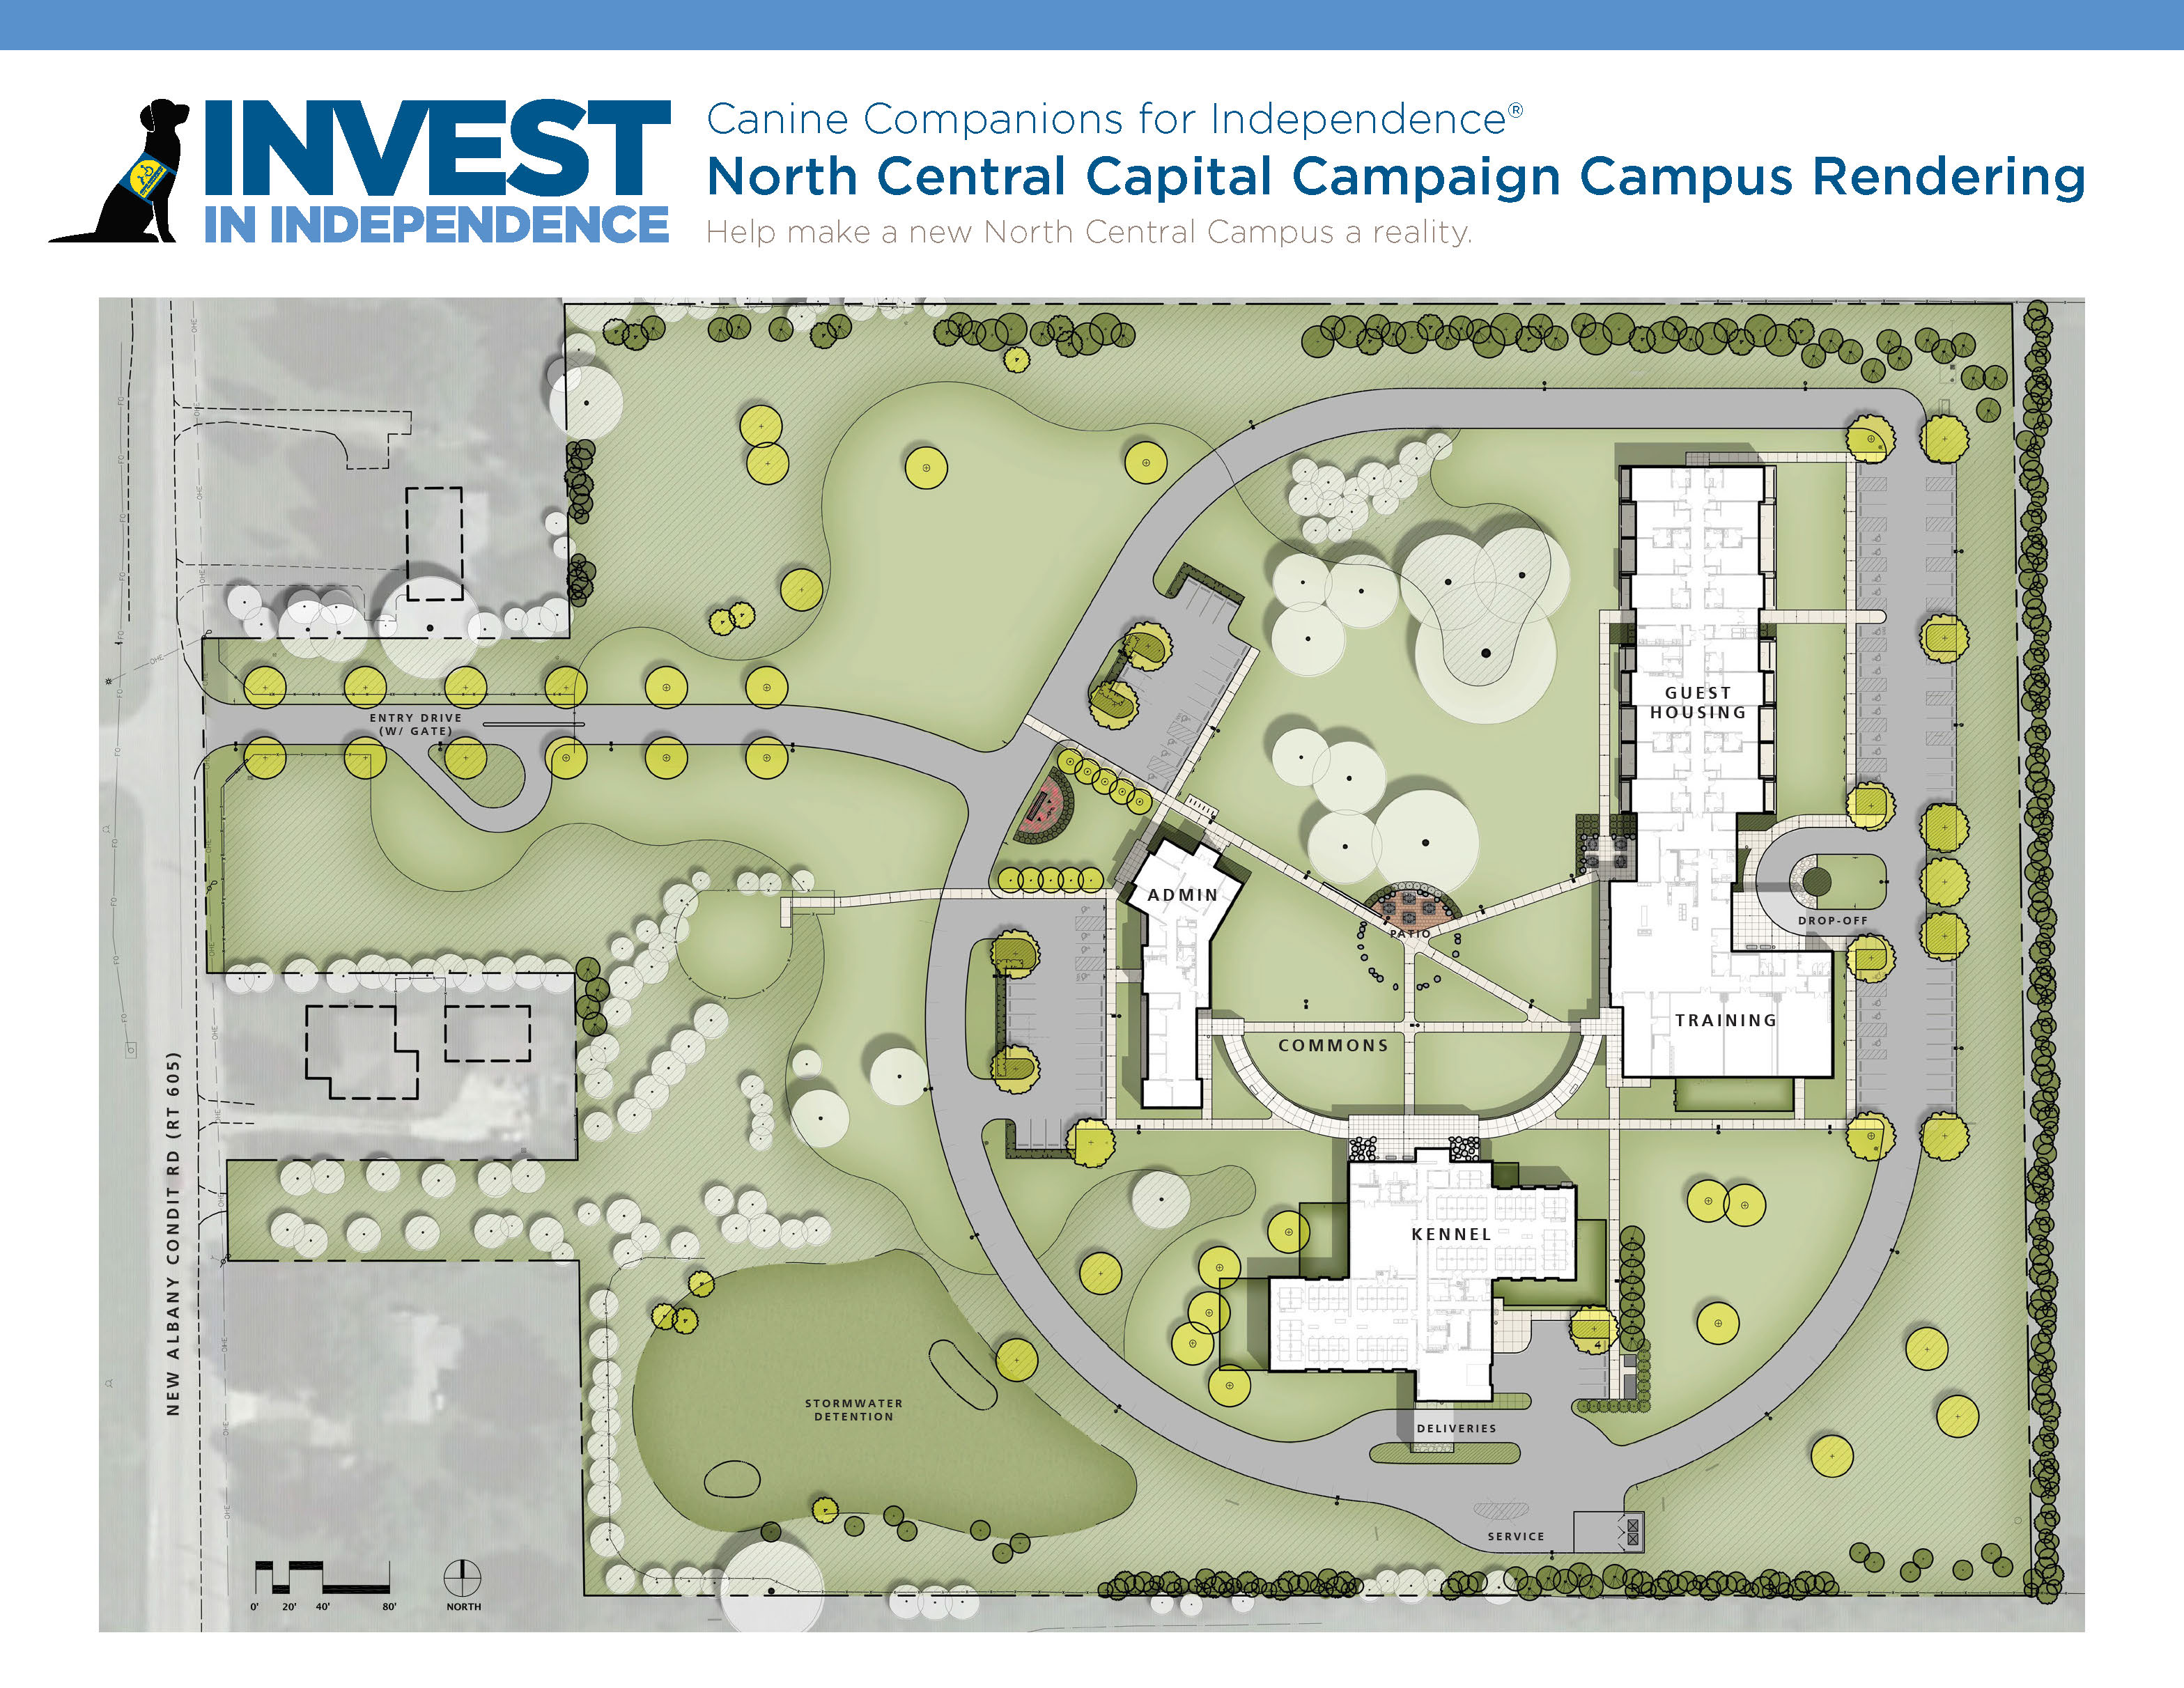 New North Central Campus